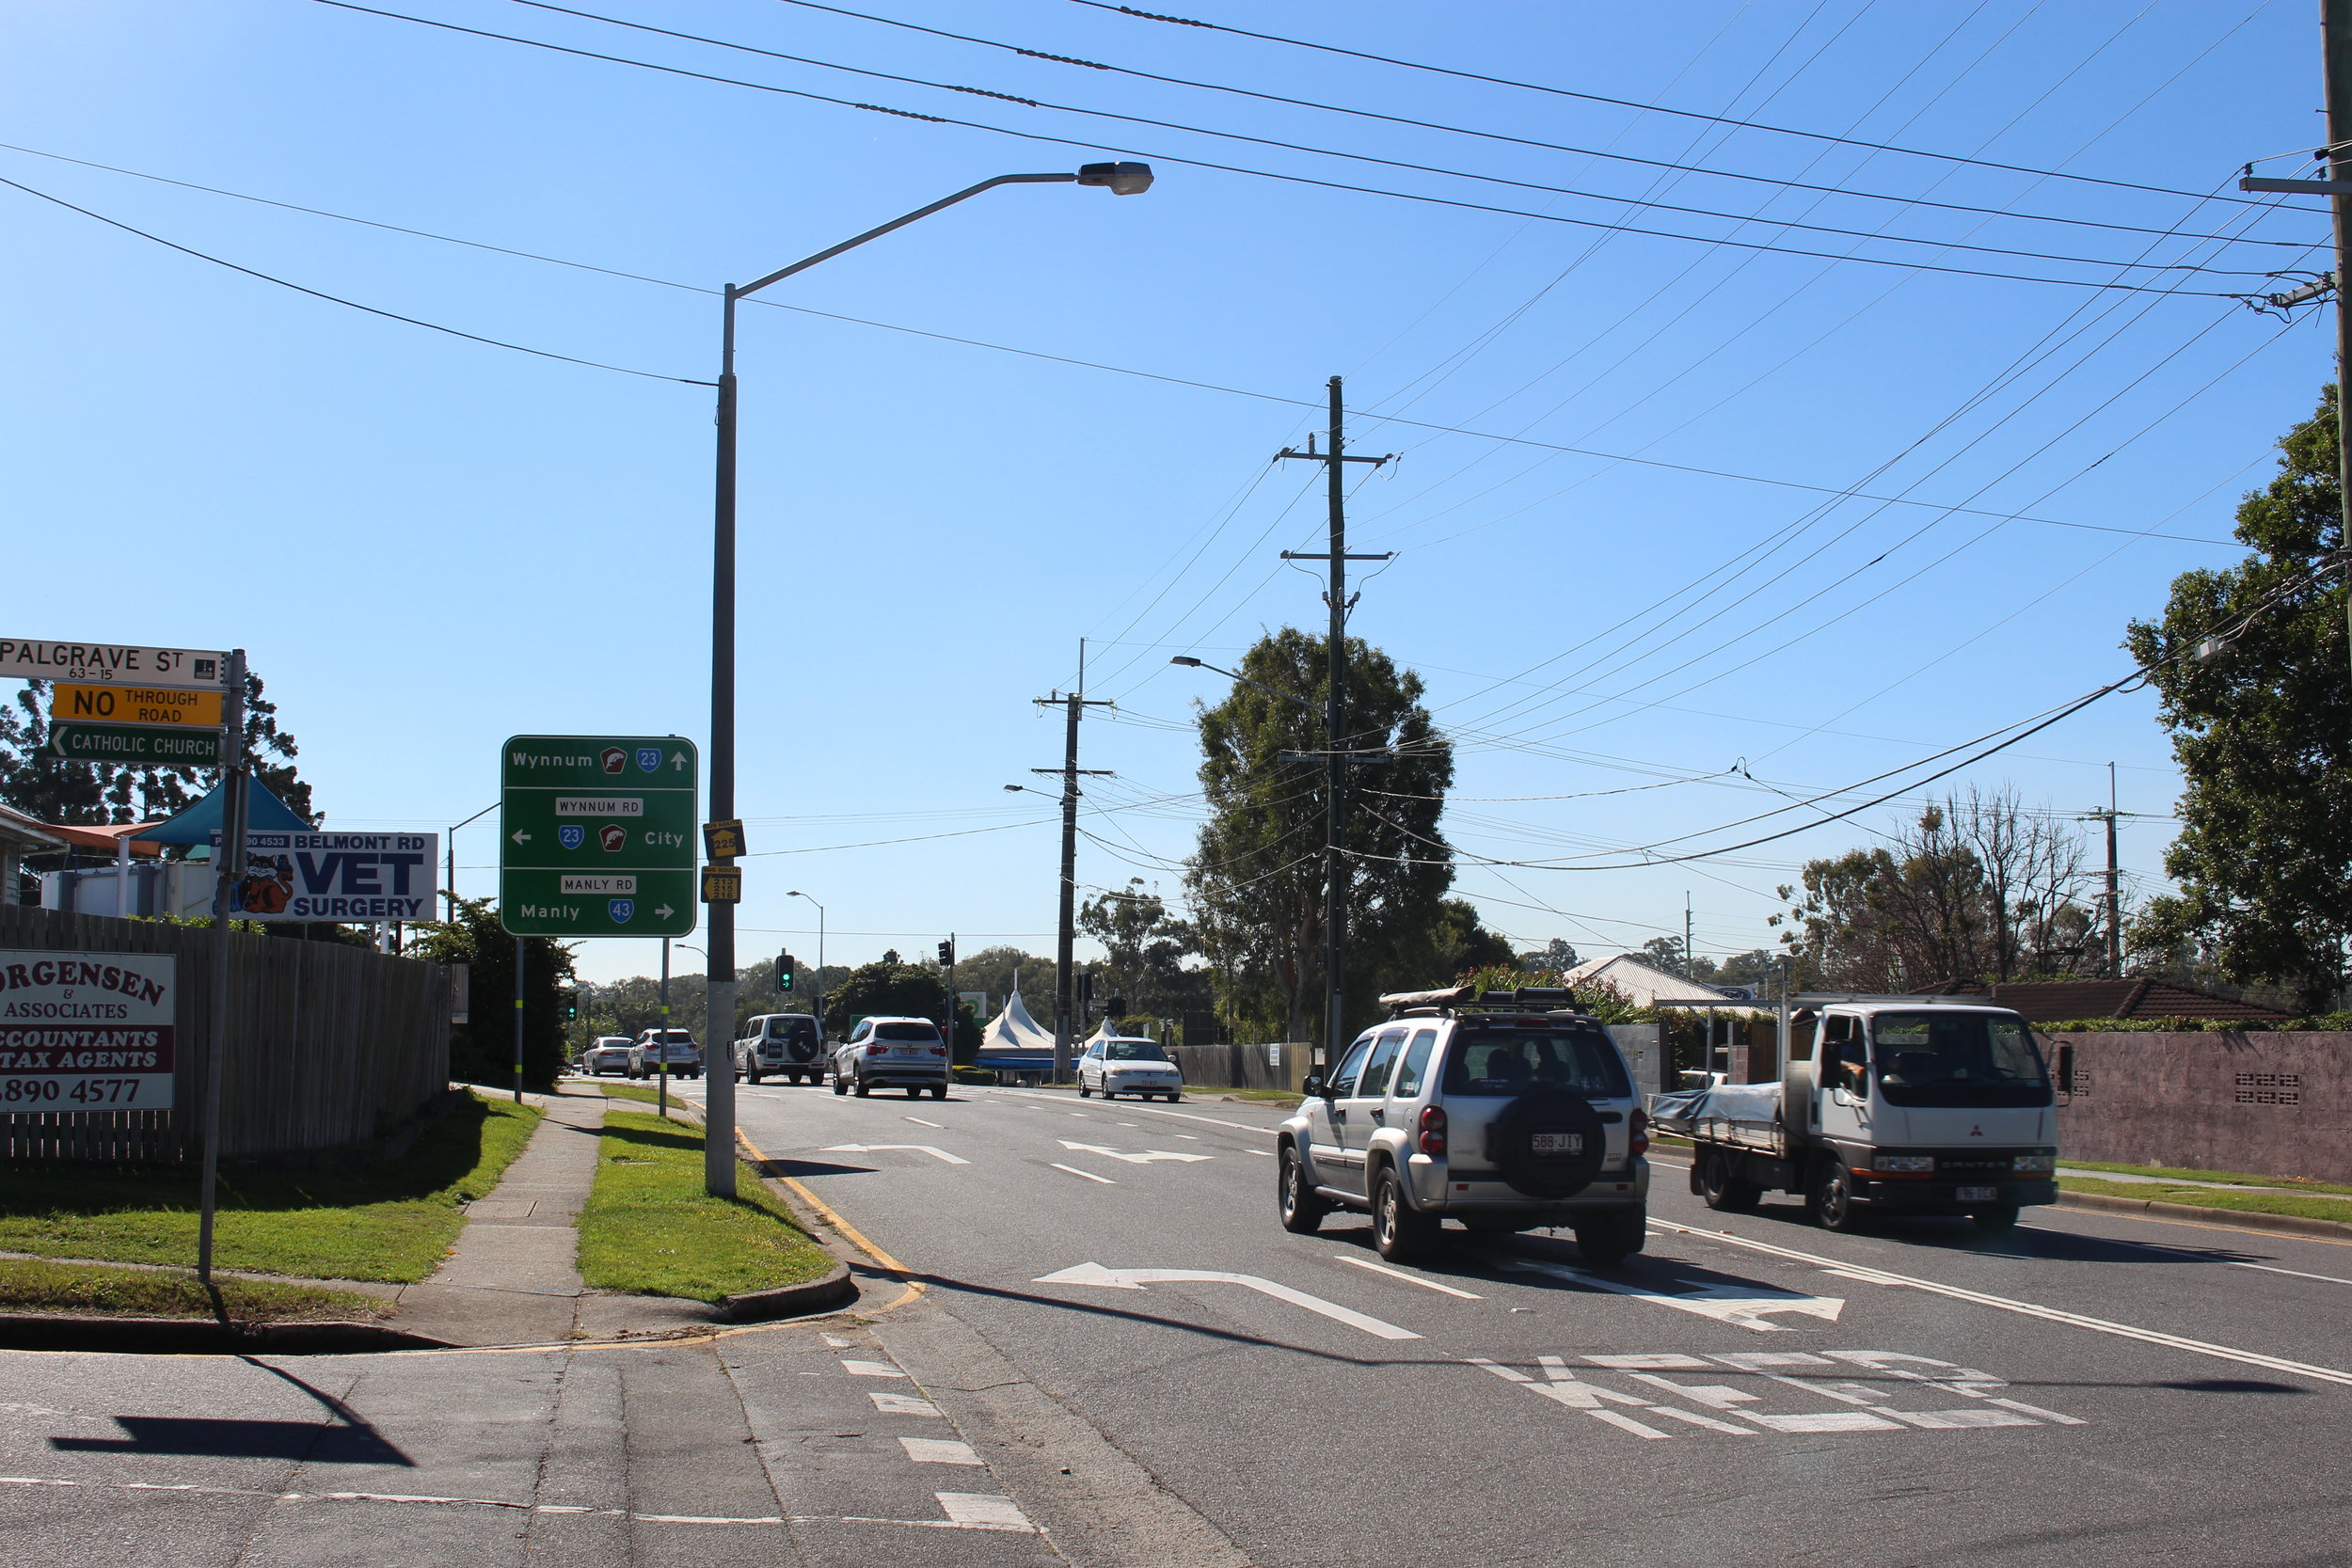 Intersection upgrade for belmont rd, wynnum rd & Manly rd, tingalpa (now complete)